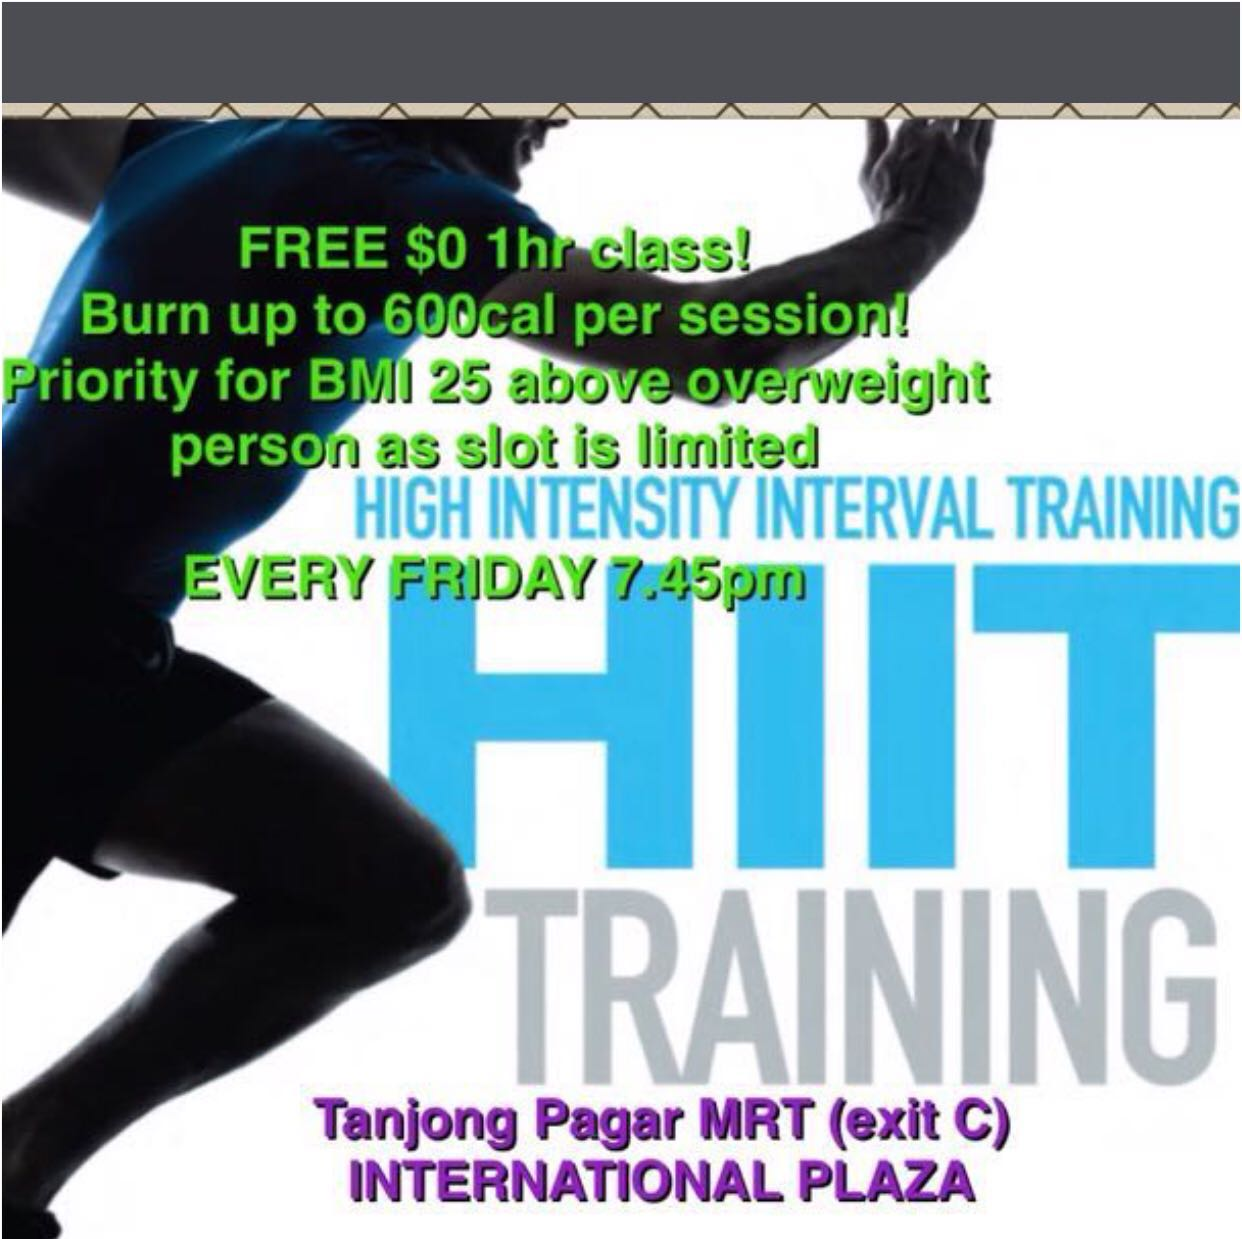 HIIT indoor free!! ❌Herbalife ❌Zumba ❌true fitness ❌fitness first ❌real yoga membership❌adidas ❌Nike ❌forever21✅burn fats✅weightloss✅slimming